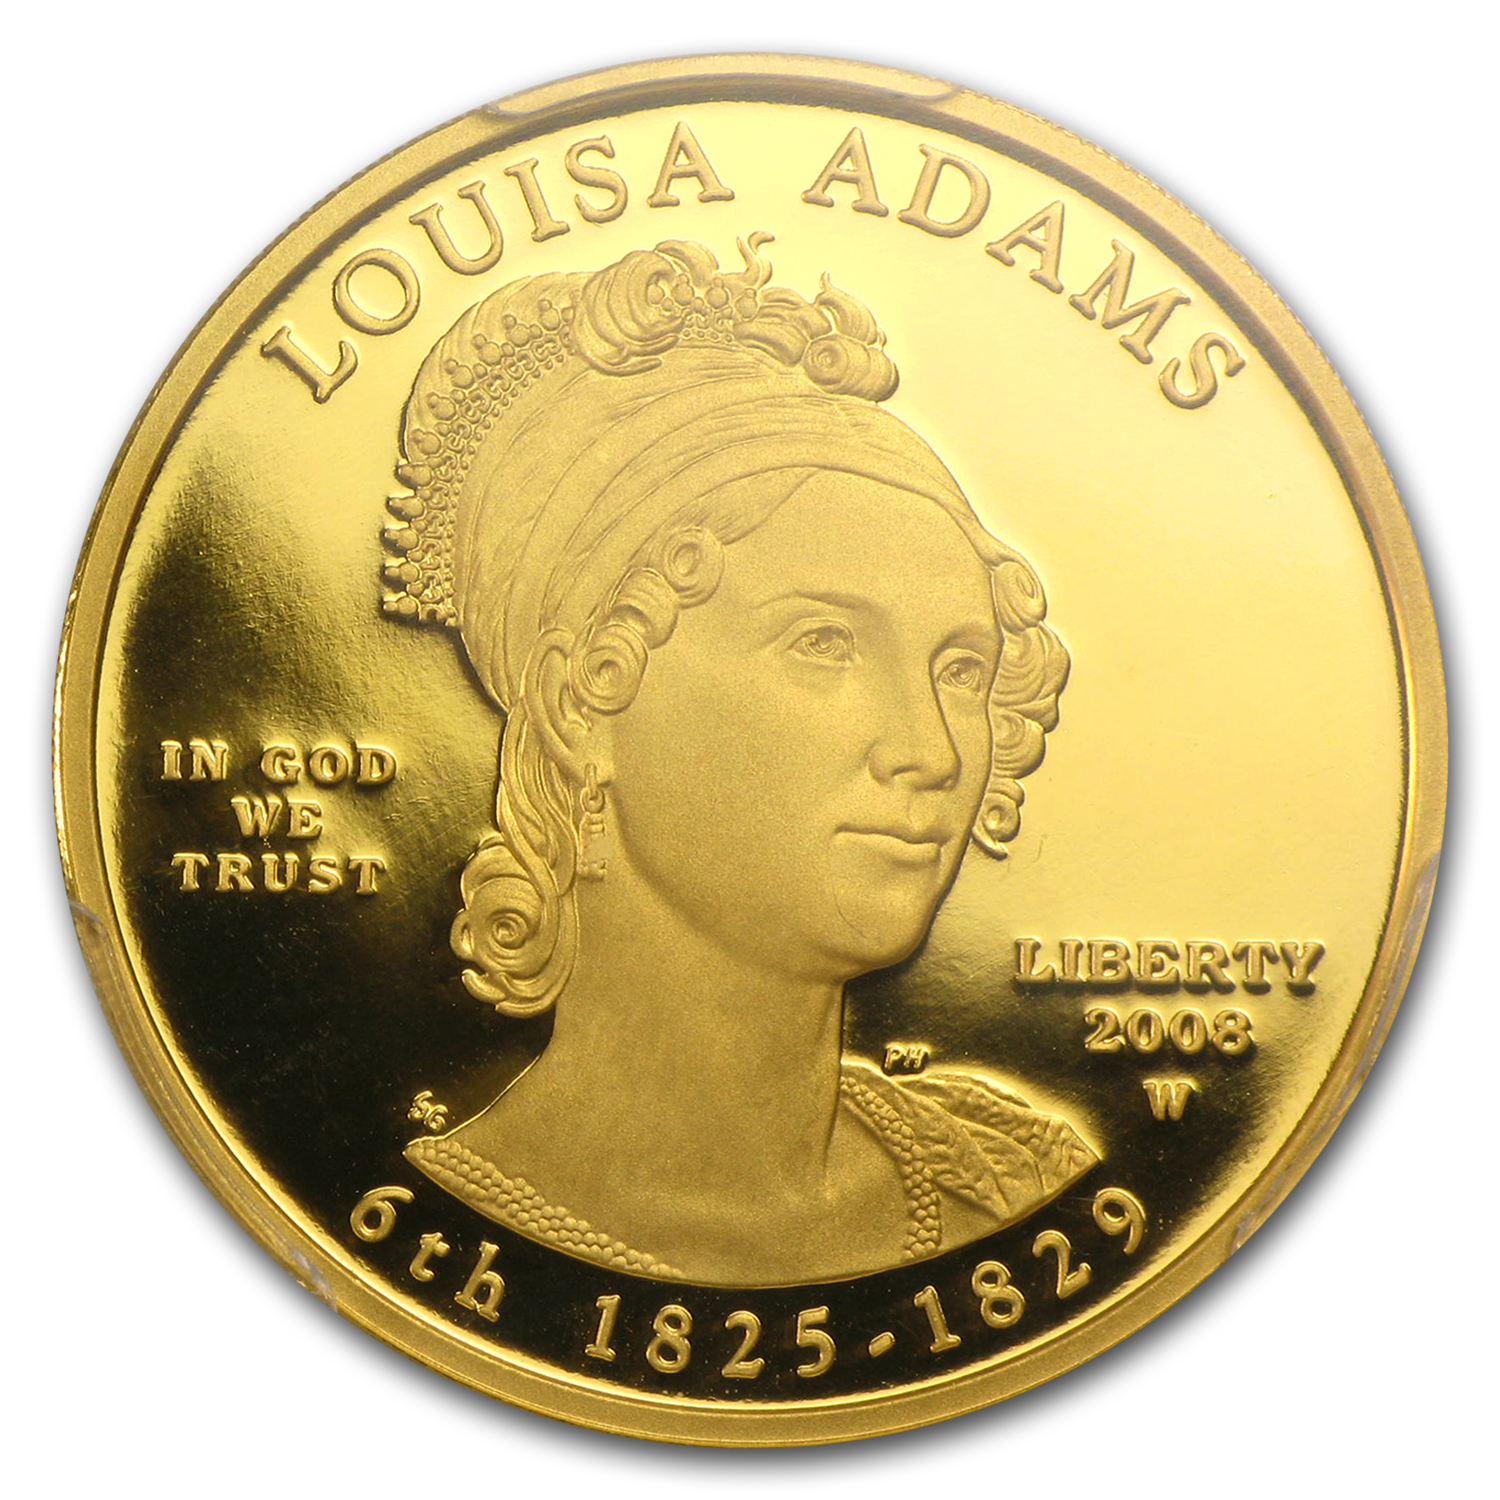 2008-W 1/2 oz Proof Gold Louisa Adams PR-69 DCAM (FS) PCGS